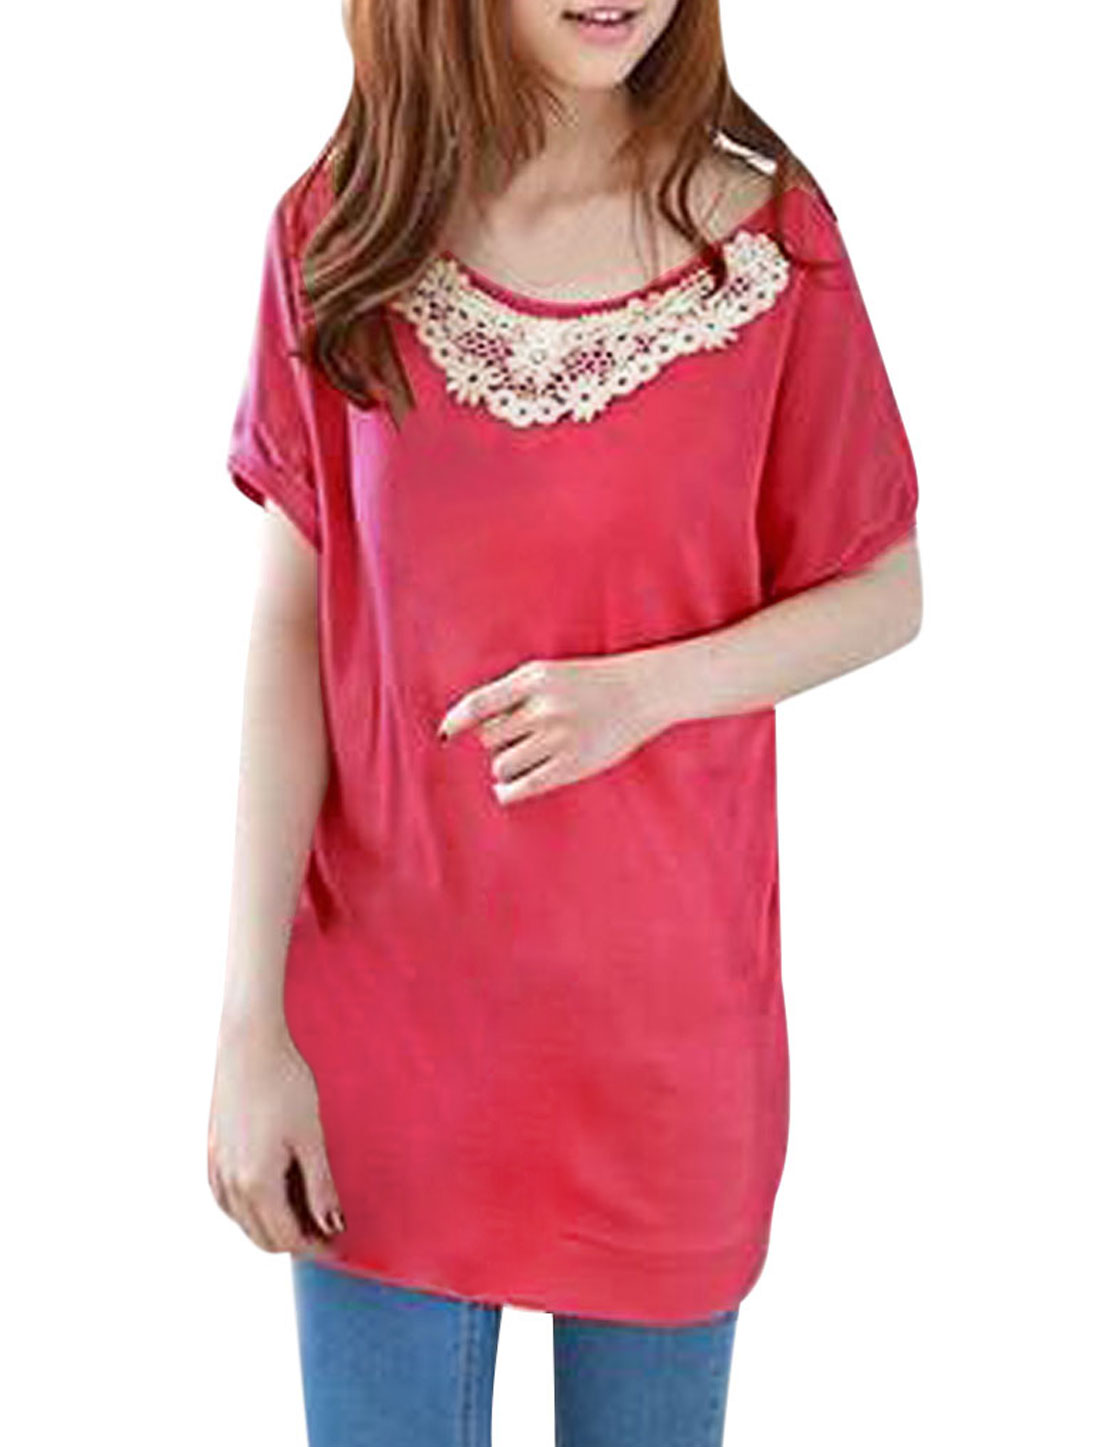 Lady Round Neck Stretchy Hem Batwing Chic Tops Blouses Watermelon Red S